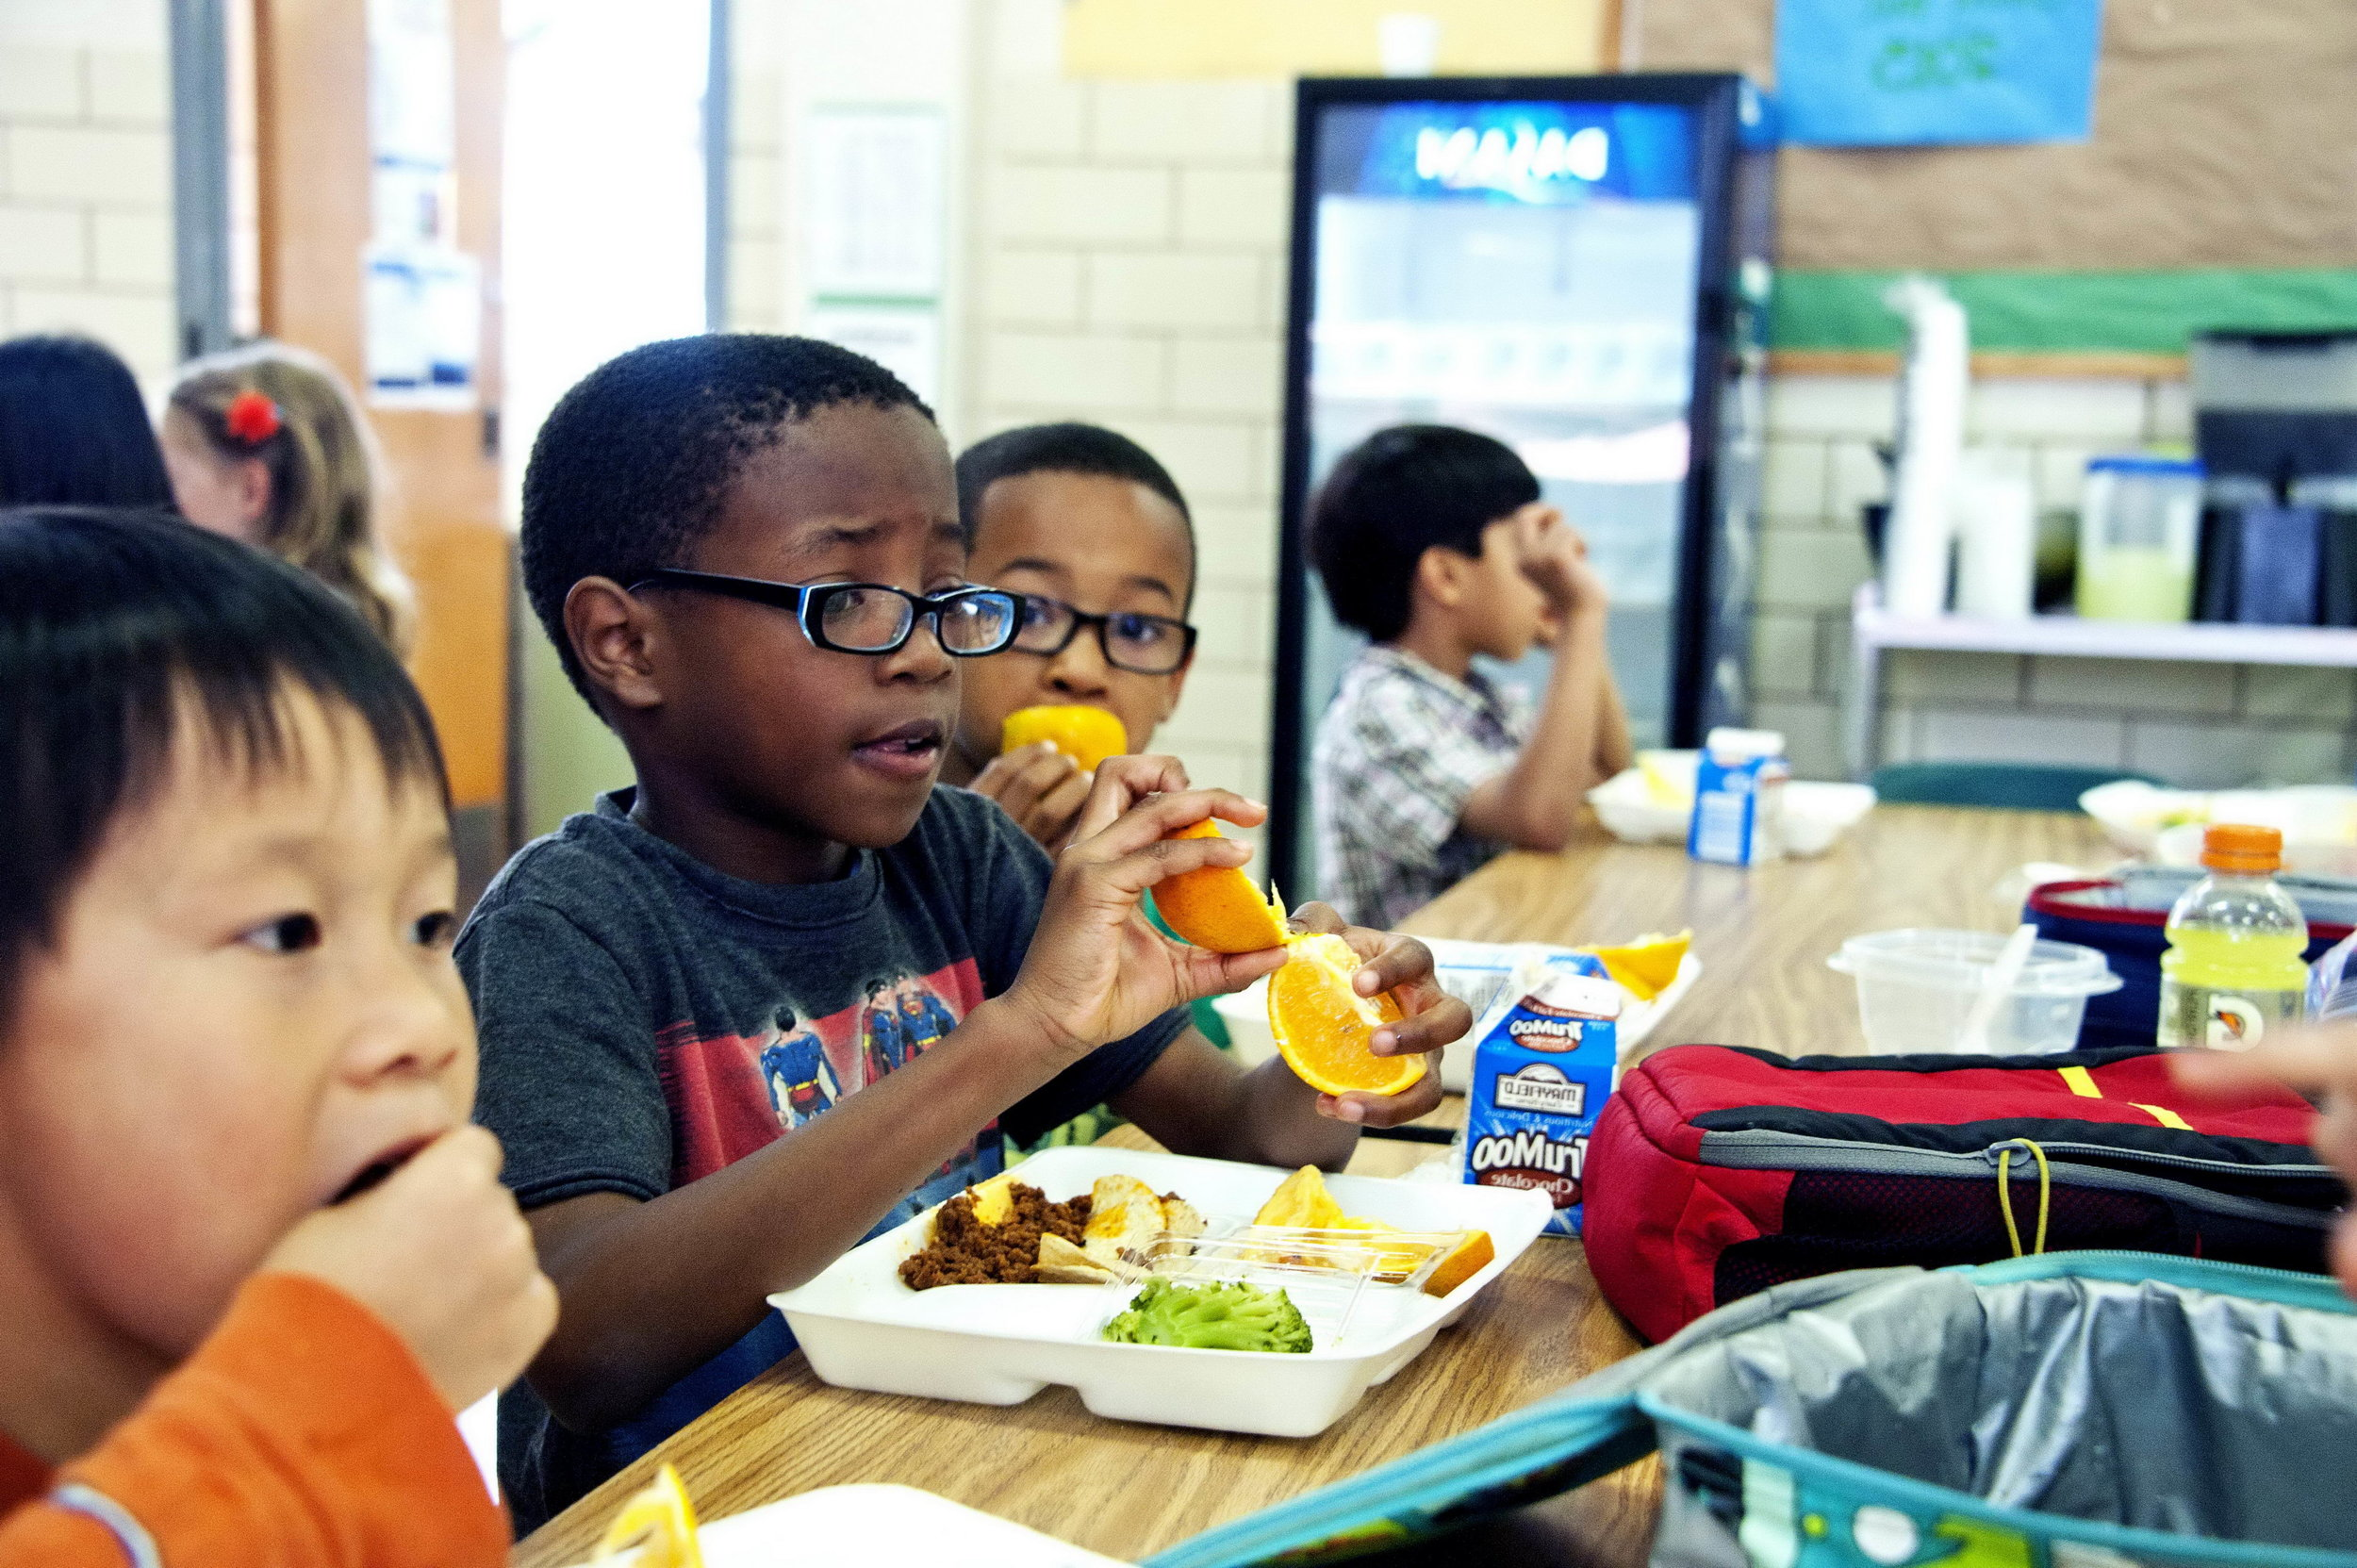 Child eating school lunch. Public domain